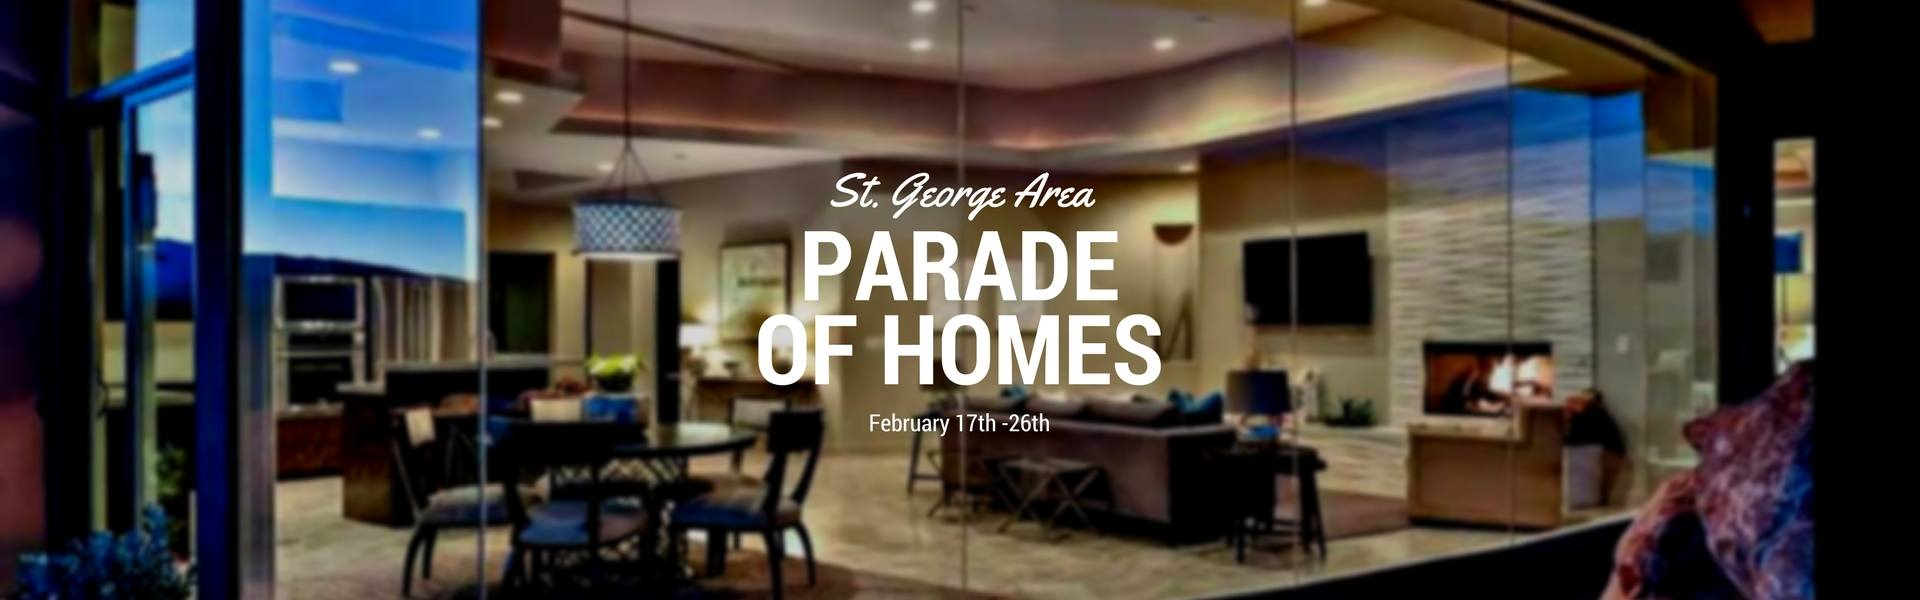 28 Reasons to Attend the St. George Area Parade of Homes